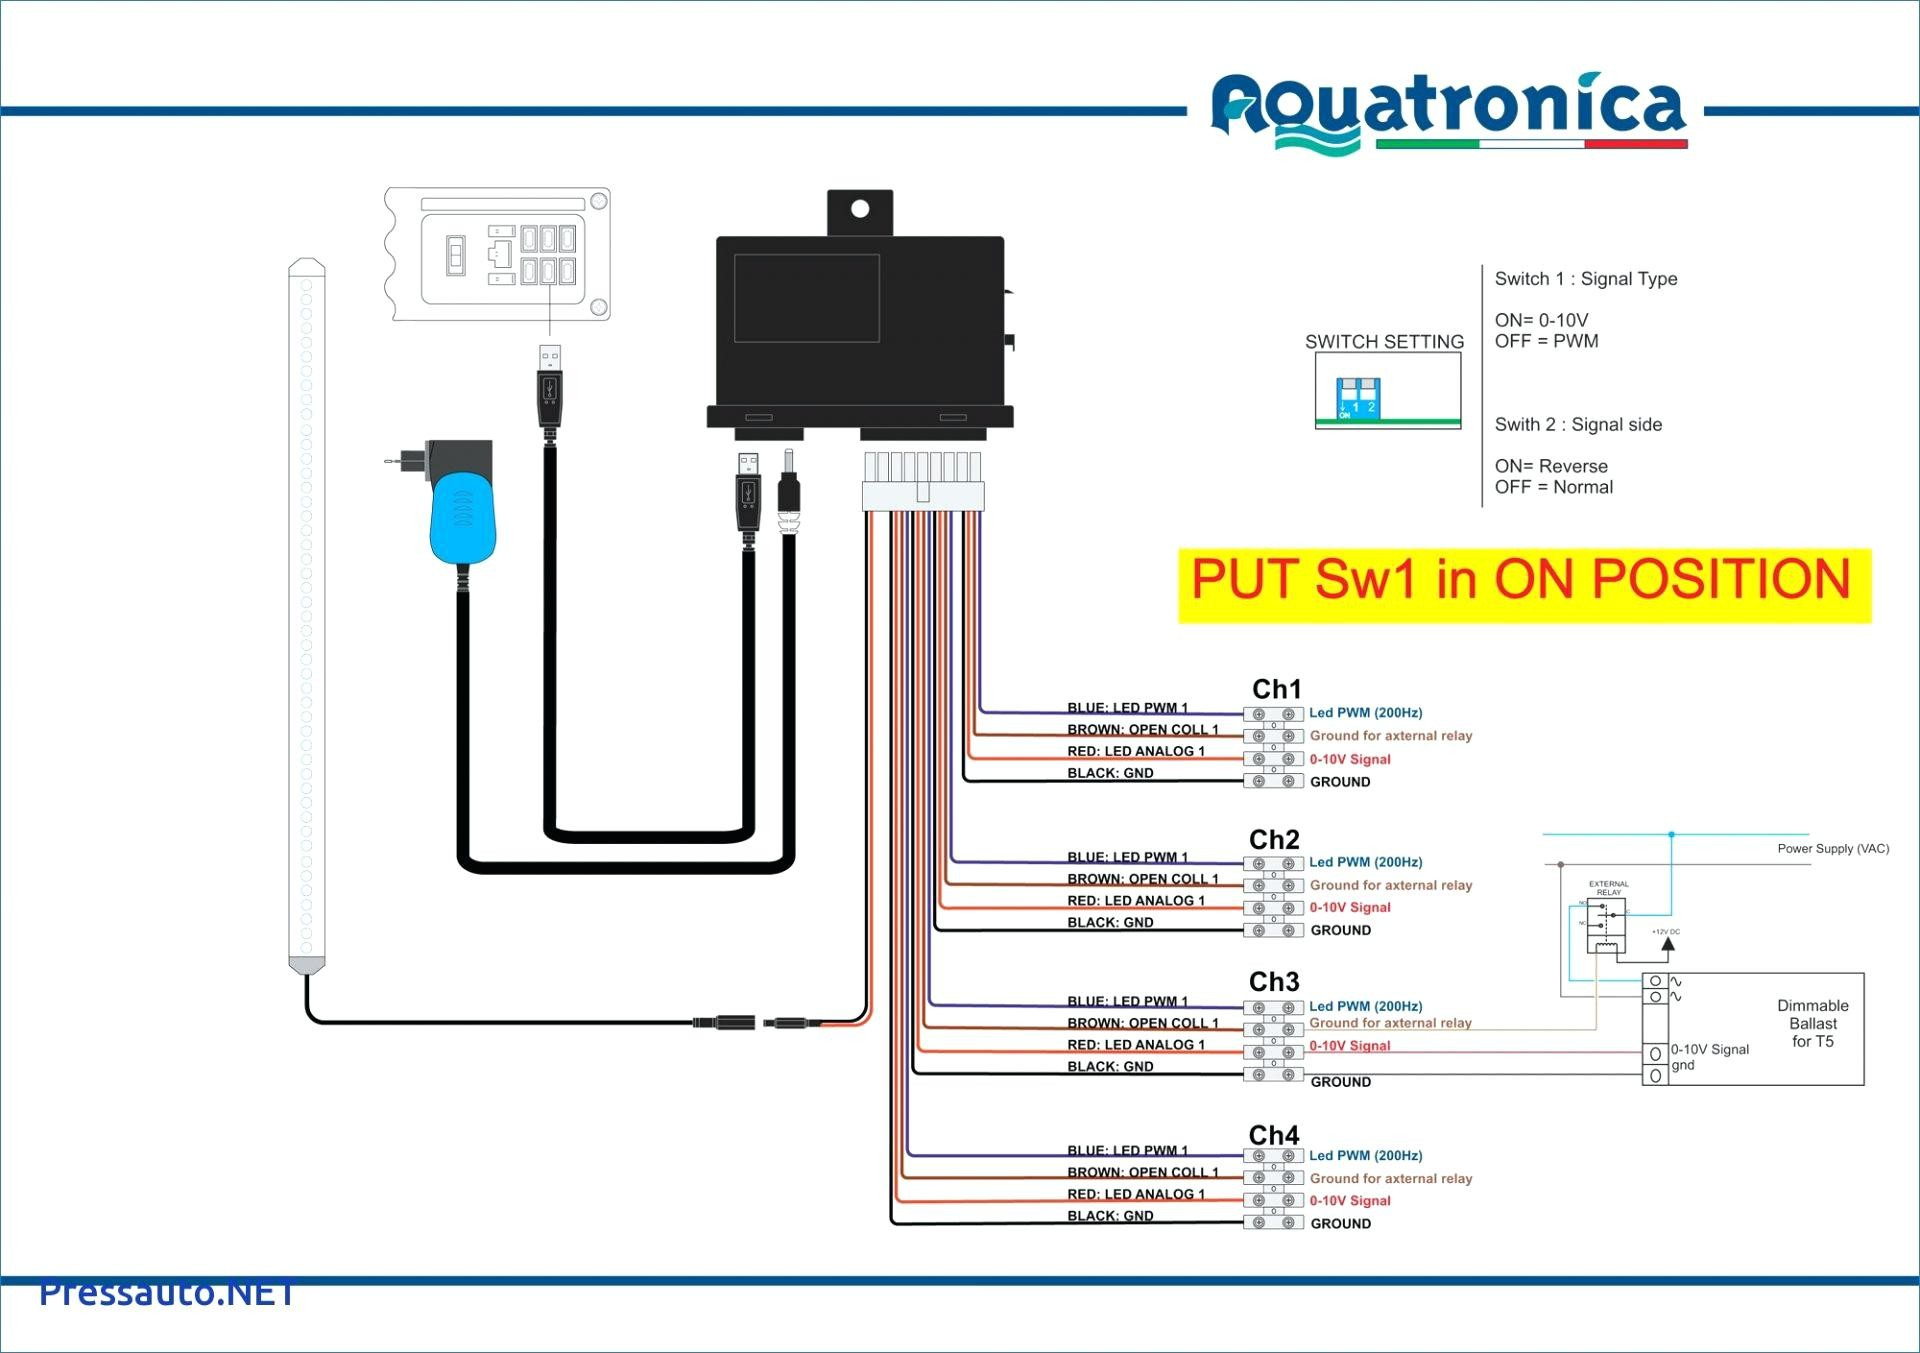 Dimmable Ballast Wiring Diagram Lutron Dimming Ballast Wiring ...